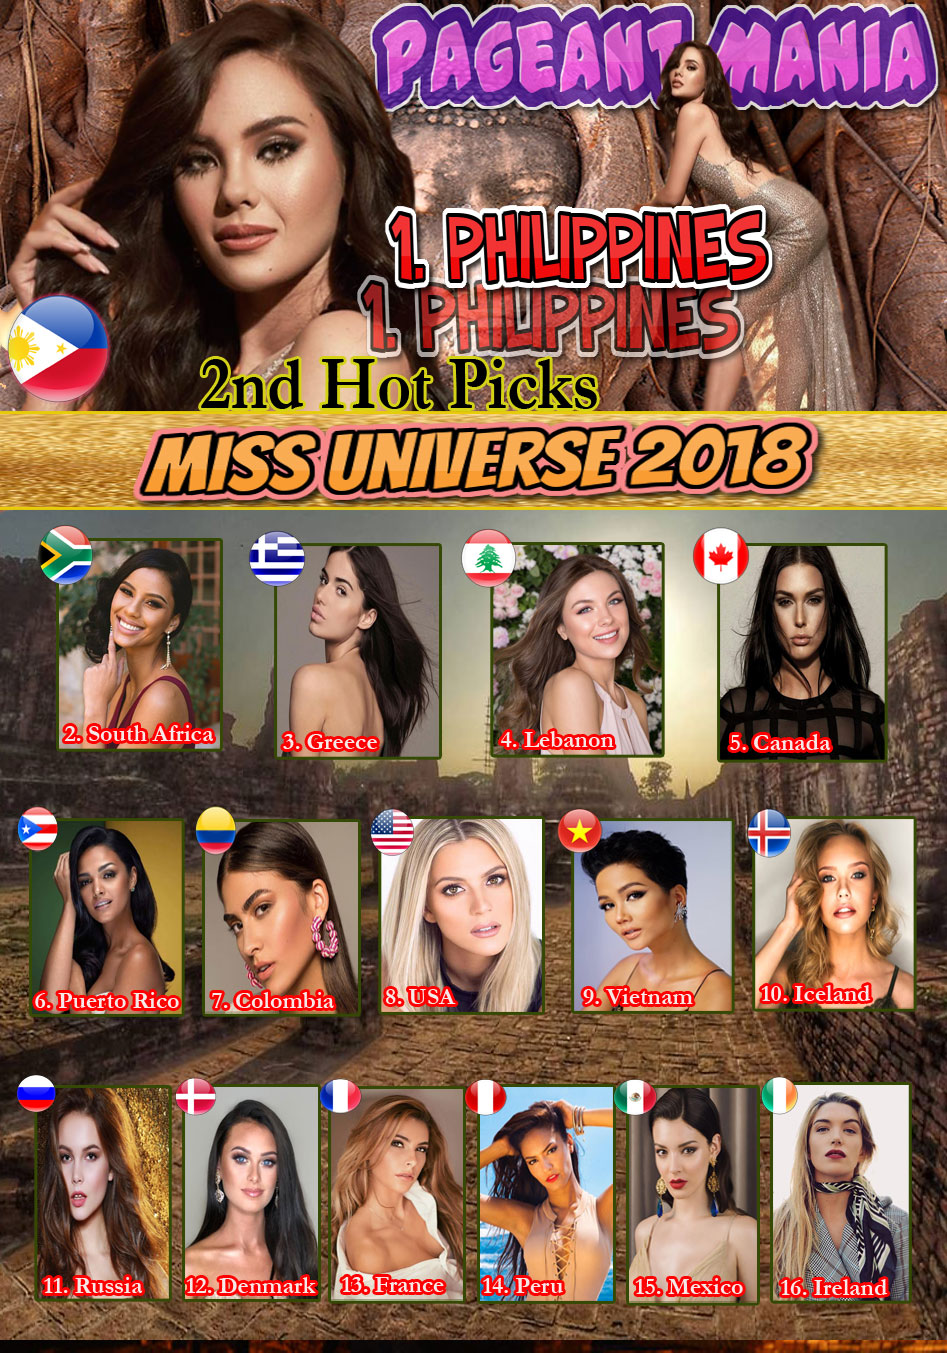 PAGEANT MANIA - MISS UNIVERSE 2018 * POST - ARRIVAL HOT PICKS* - Page 2 2nd-hp10